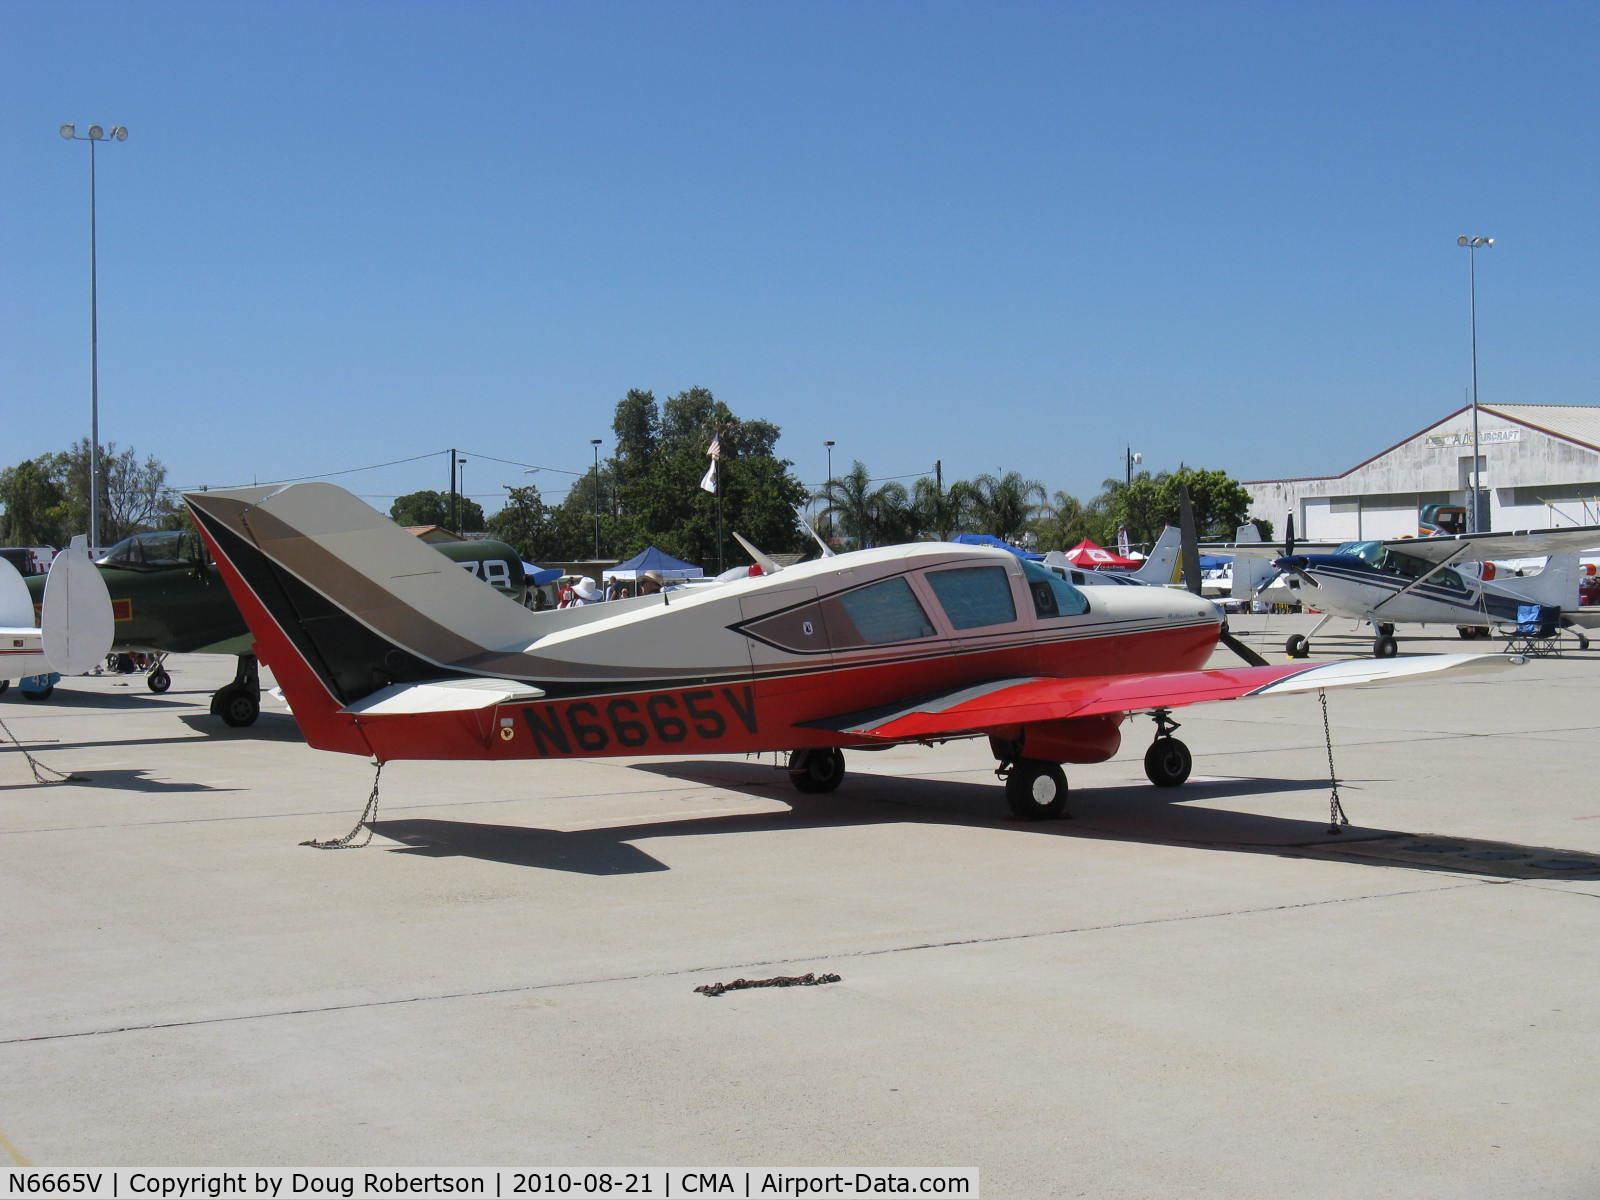 N6665V, 1967 Bellanca 17-30 C/N 30035, 1967 Bellanca 17-30 VIKING, Continental IO-520 300 Hp, 1st year of production.